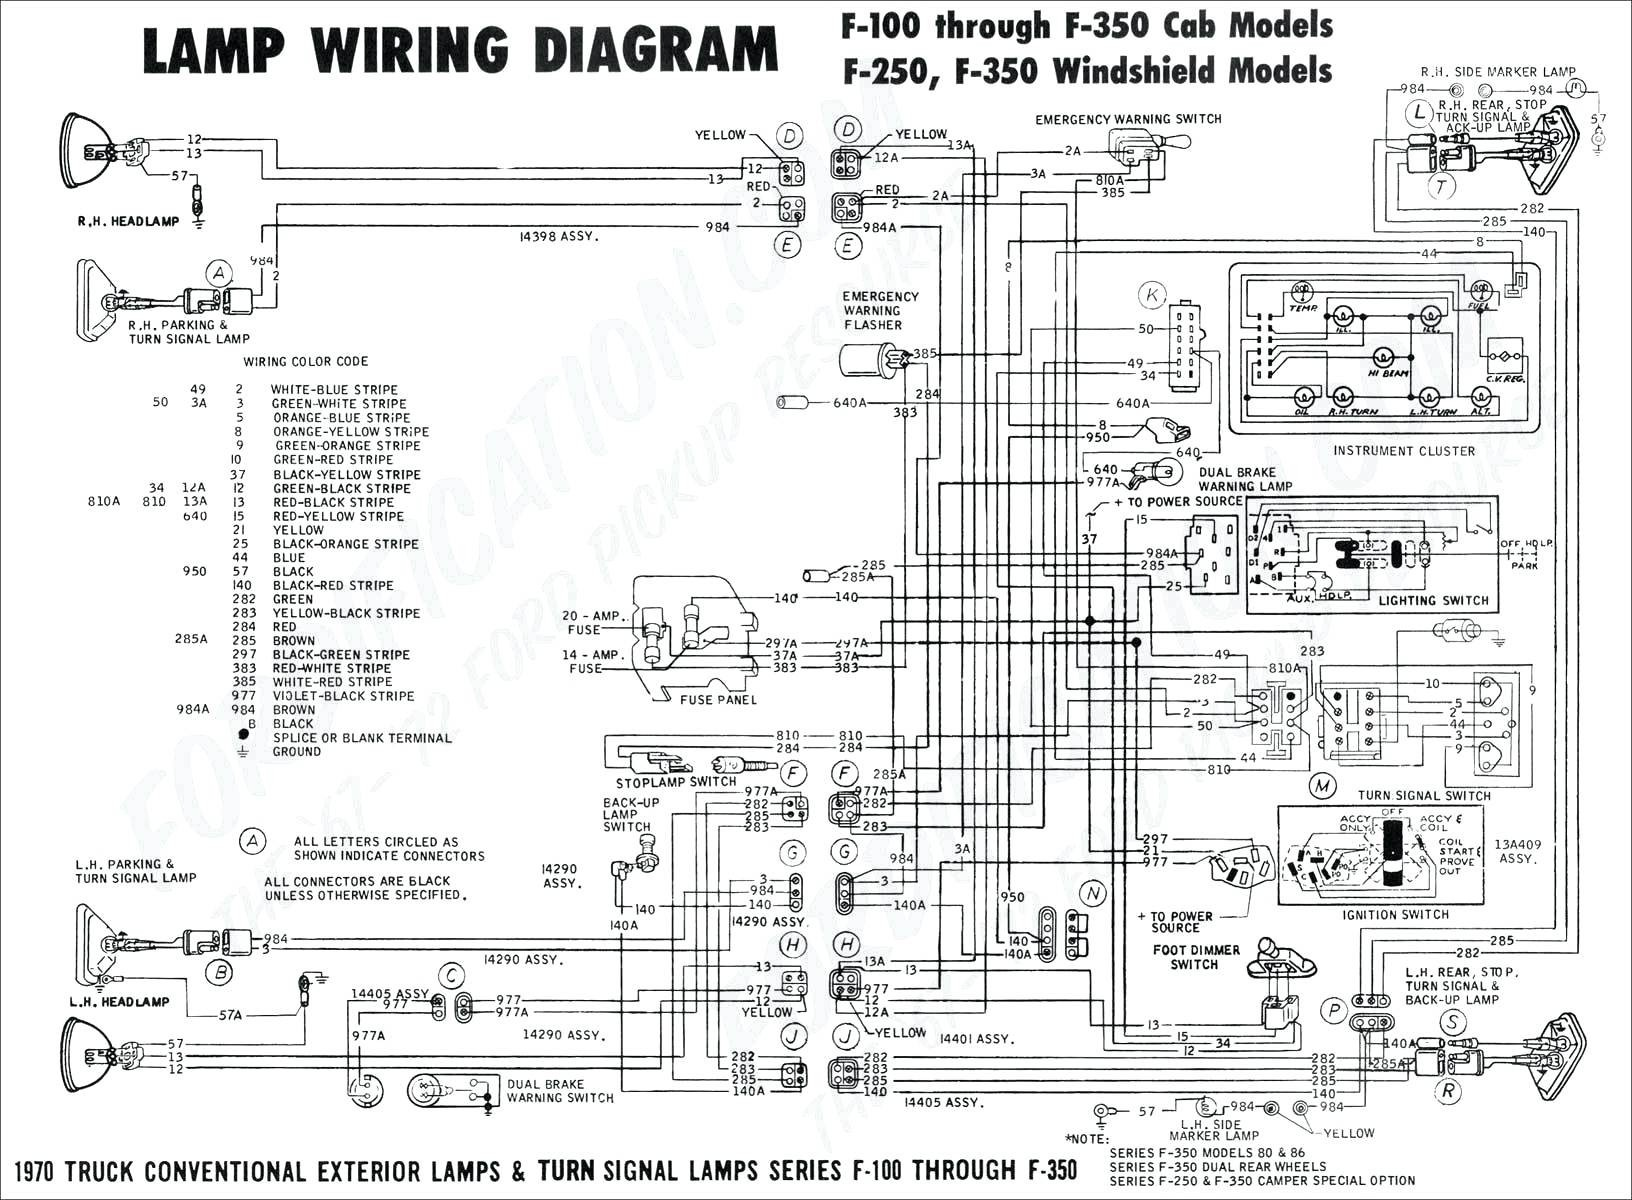 Schematic Of Rc Electric Motor Circuit Ro 6625] 3 Phase Motor Wiring Diagram Pdf Schematic Wiring Of Schematic Of Rc Electric Motor Circuit